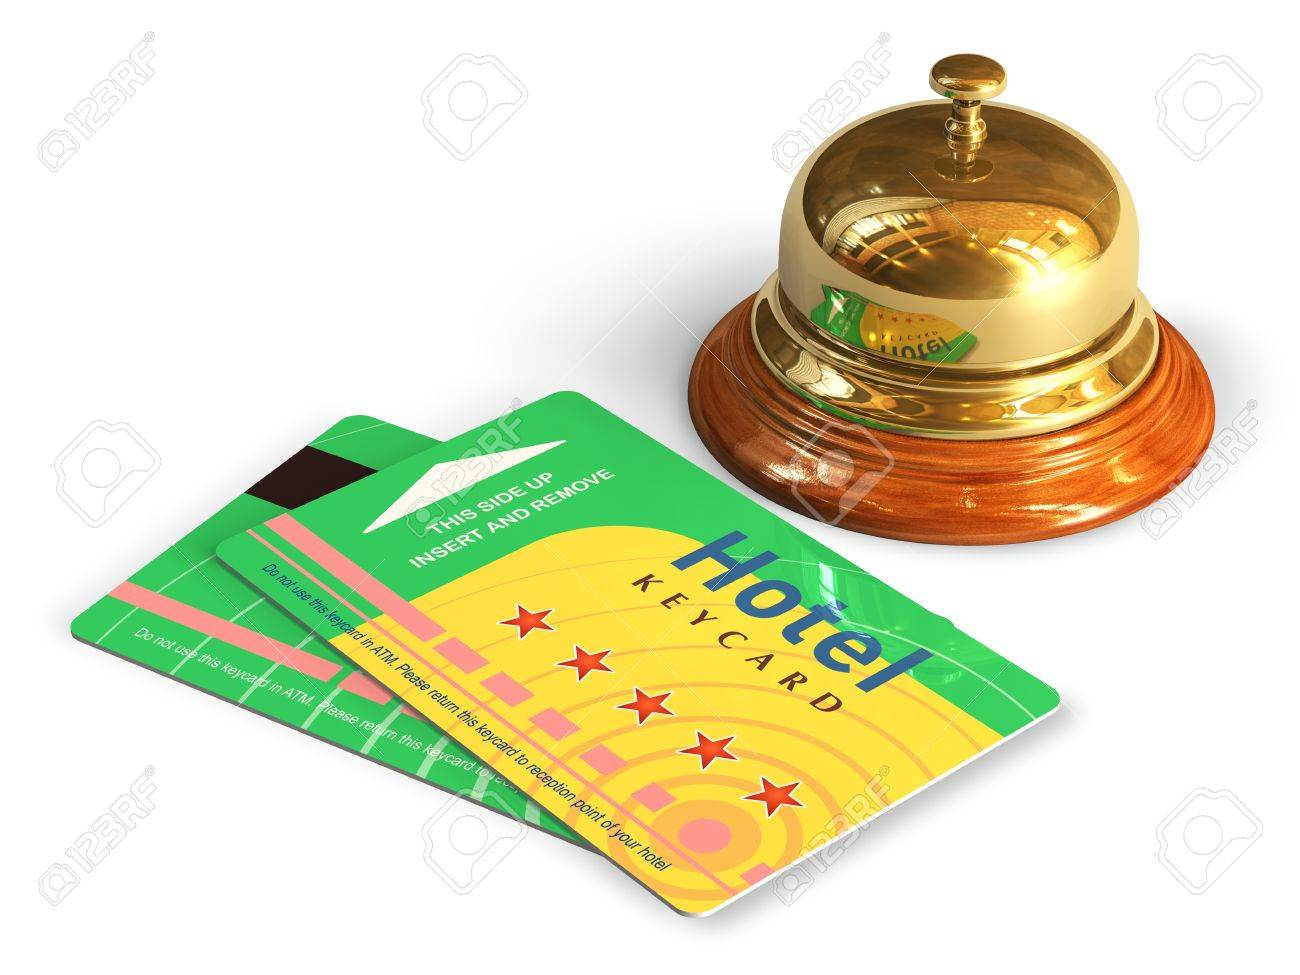 Travel and tourism concept  golden reception bell and group of color hotel keycards or cardkeys isolated on white background Stock Photo - 19527926